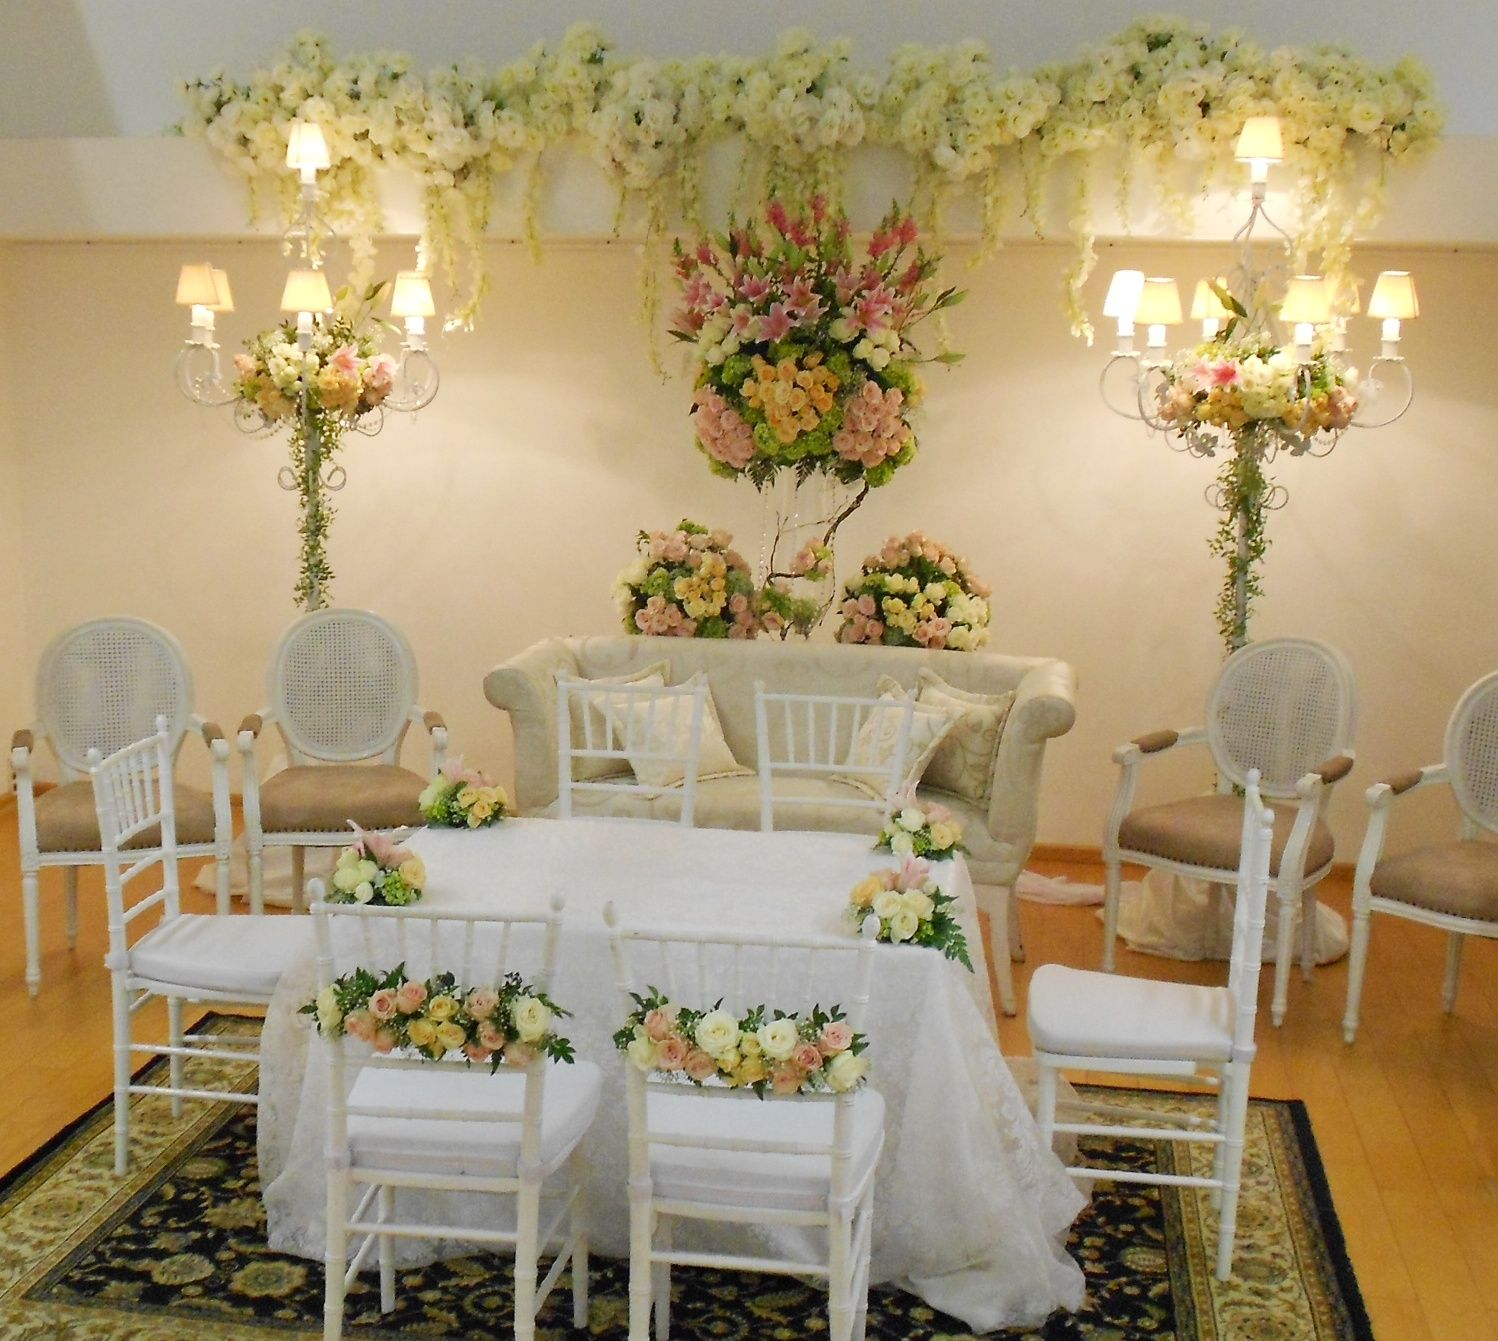 Pelaminan wedding idea pinterest decoration wedding and weddings pelaminan wedding reception tablesdecor weddingwedding decorationsgreen junglespirit Images